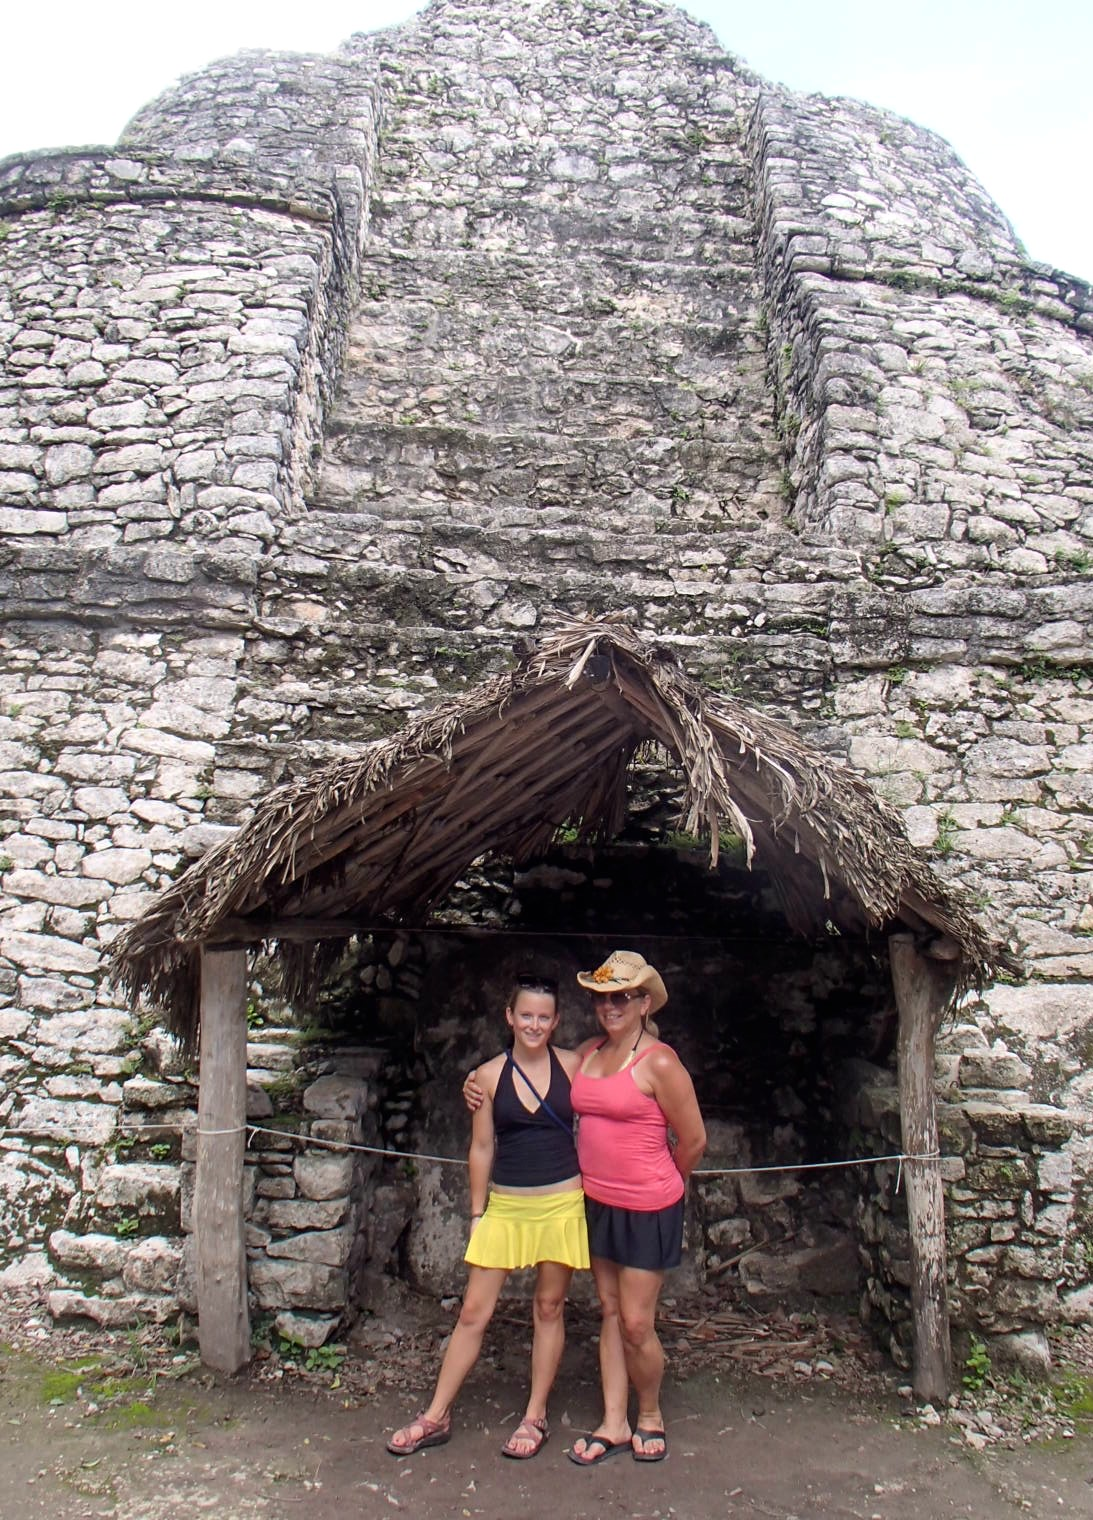 Sherry and Jenna in Mexico